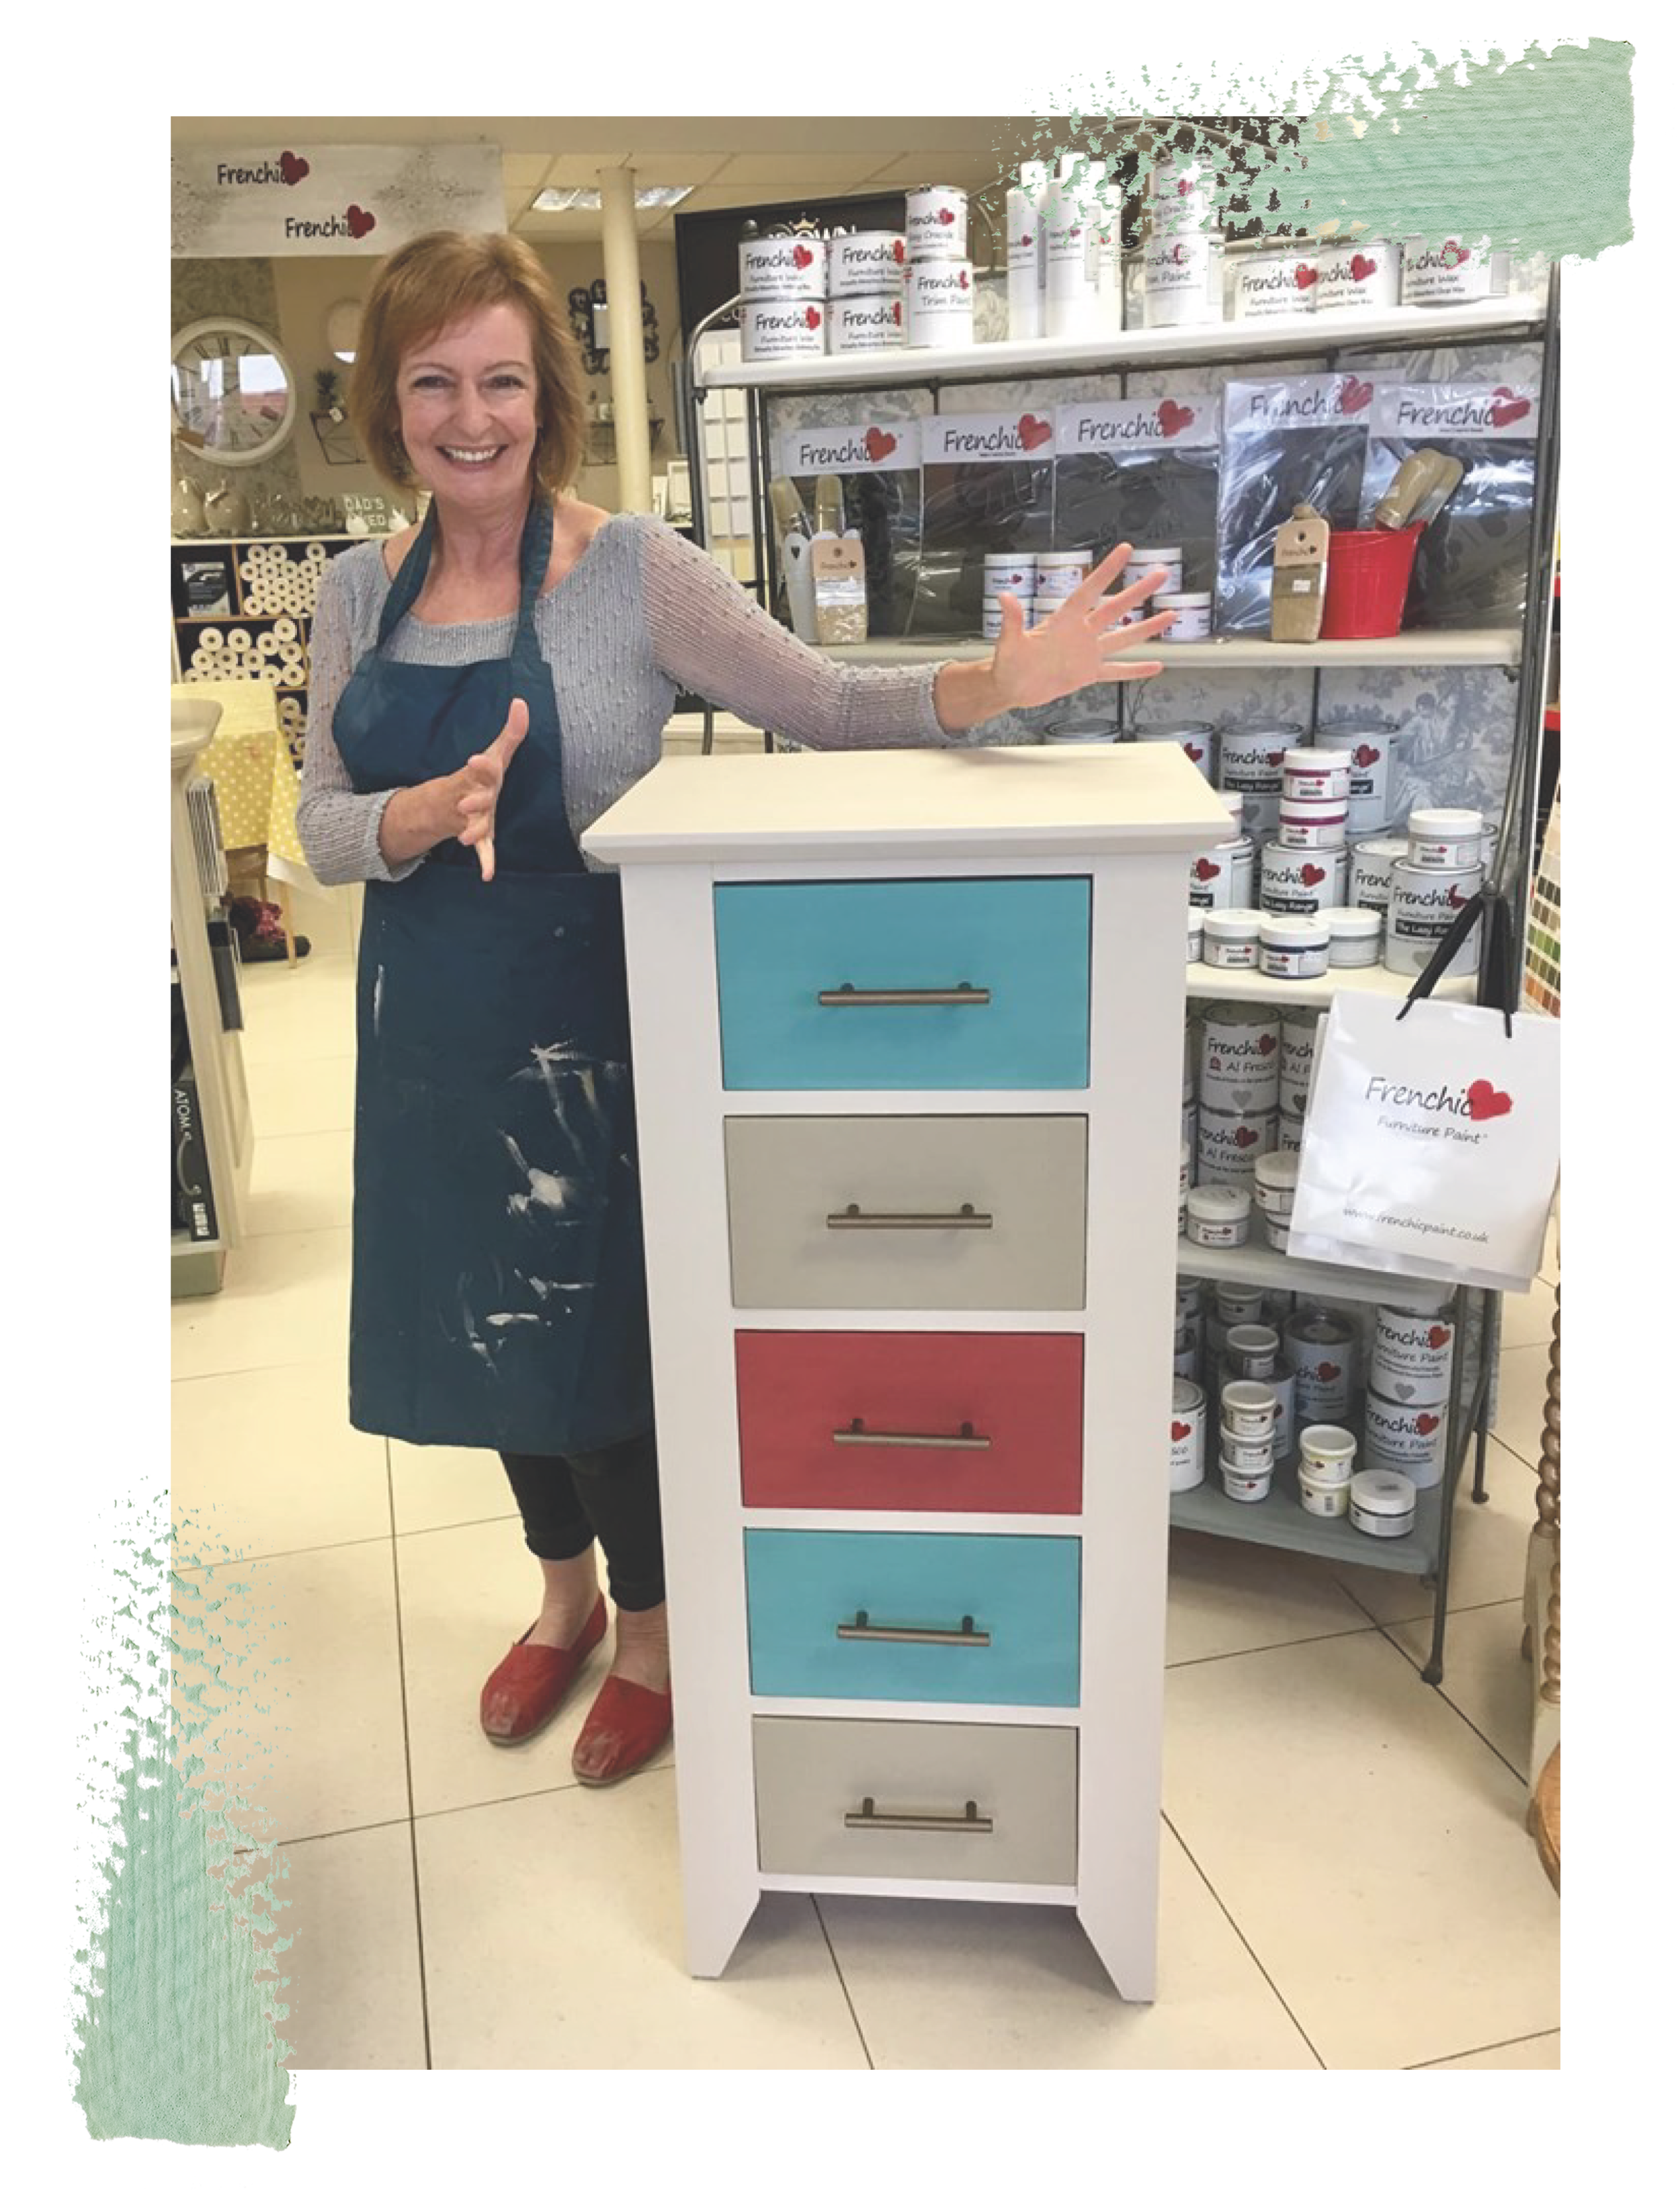 Axeholme Decorating Centre - Frenchic Paint workshops - Learn to paint your own furniture